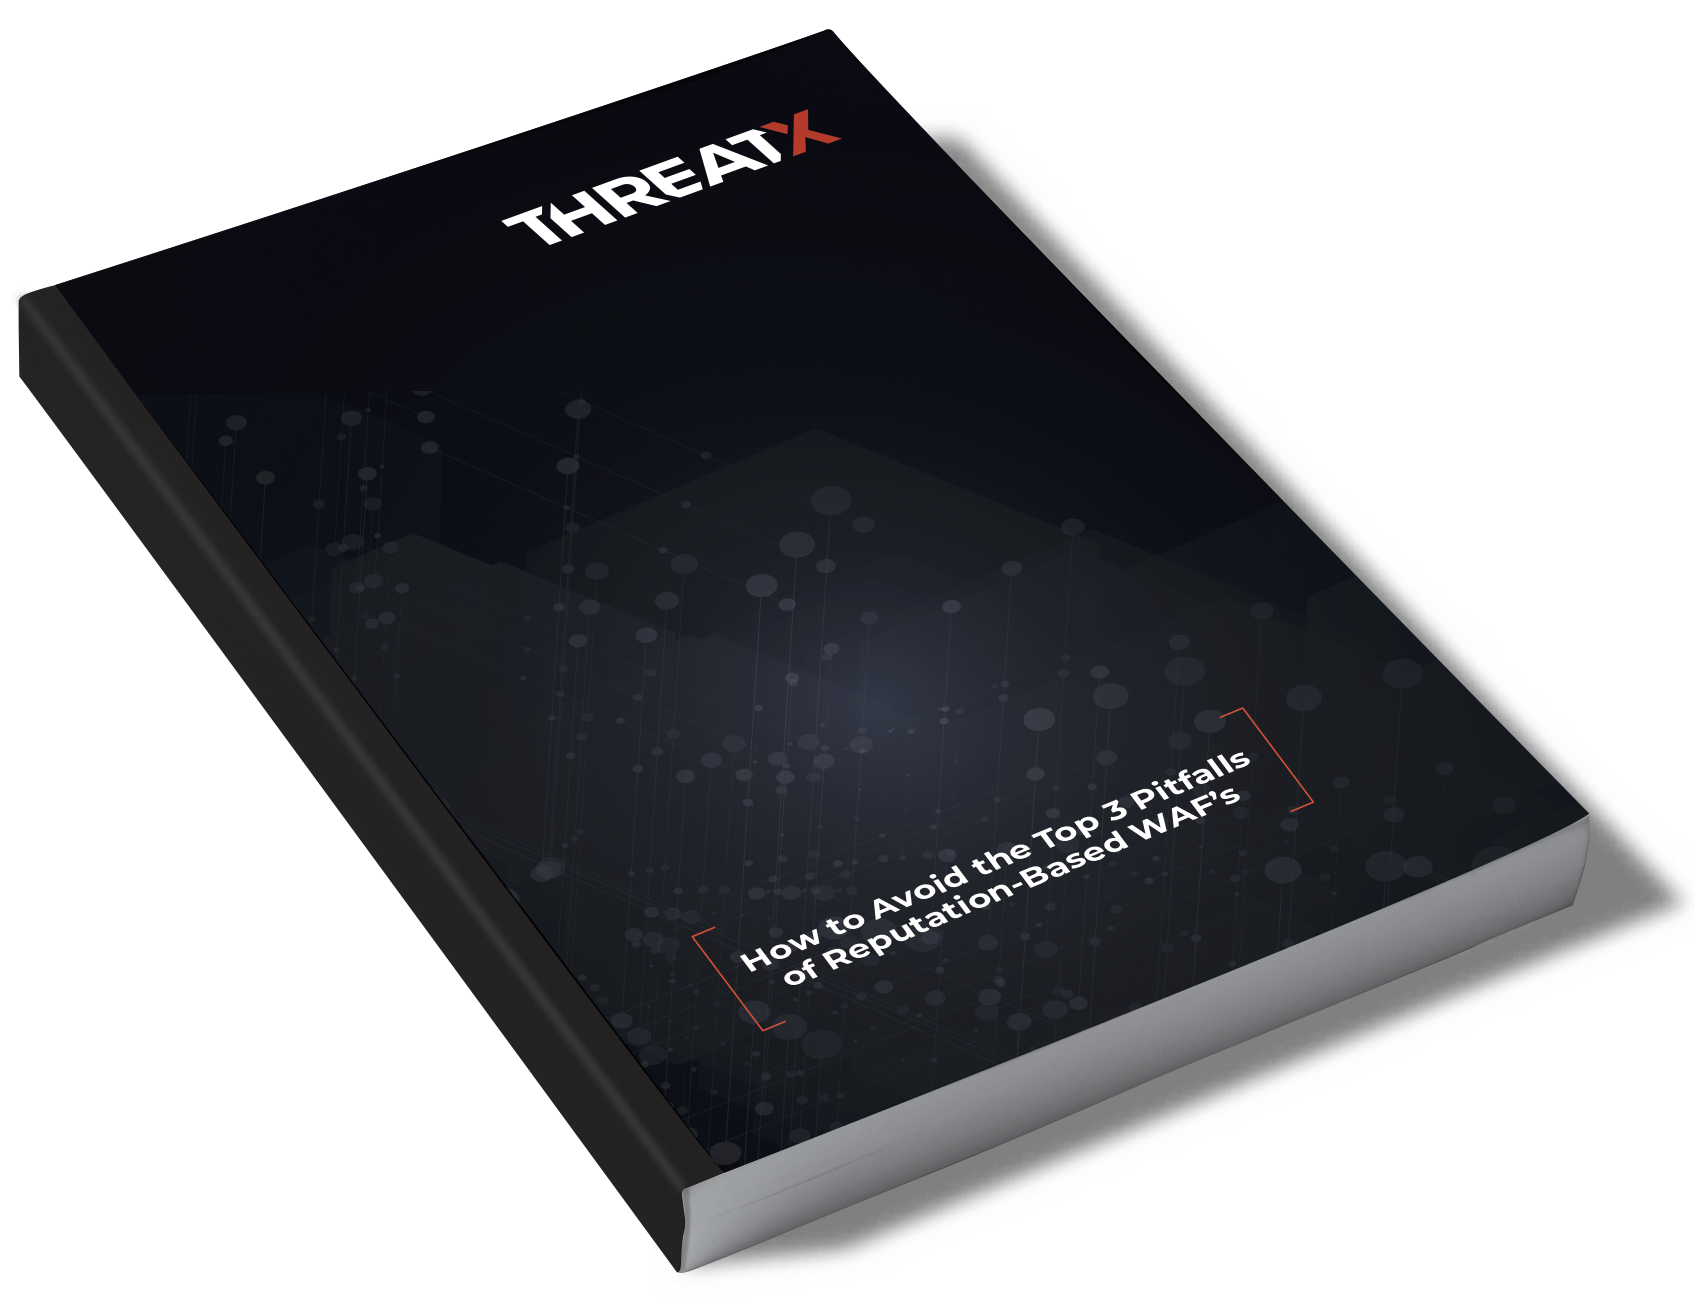 ThreatX_book cover_ThreatX_revised branding_v1